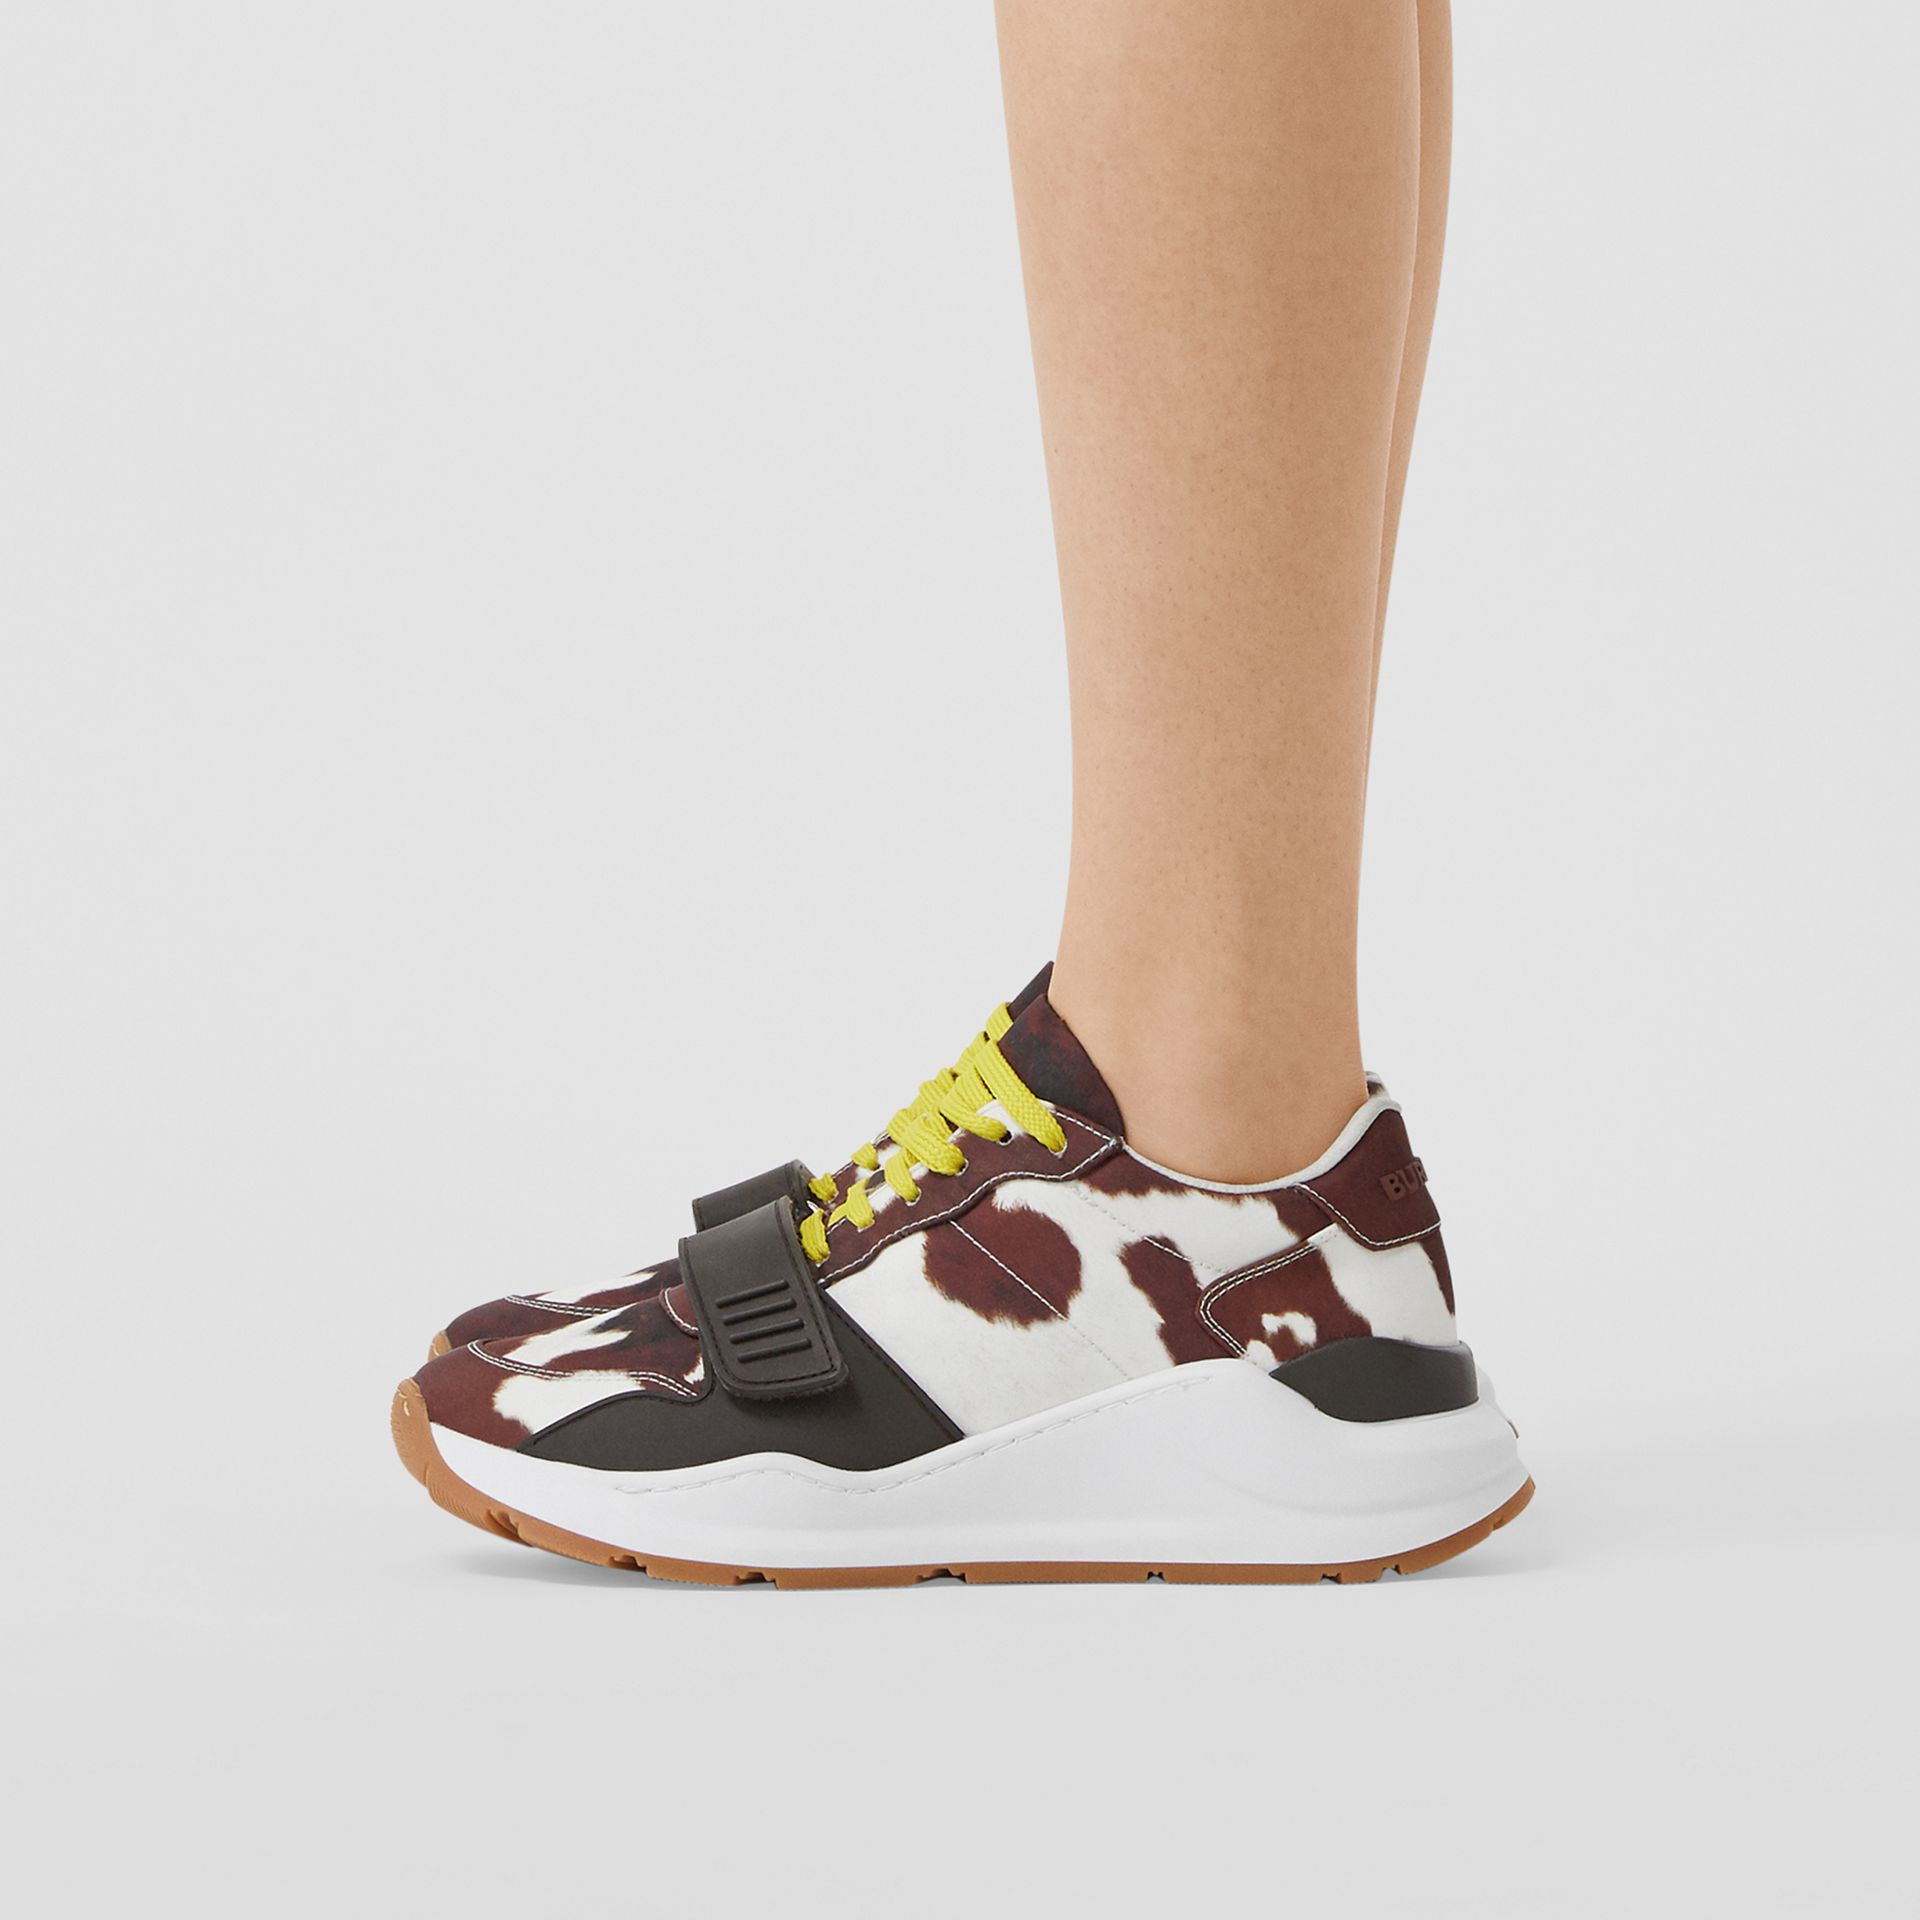 Cow Print Nylon Sneakers in Brown - Women | Burberry United States - gallery image 2